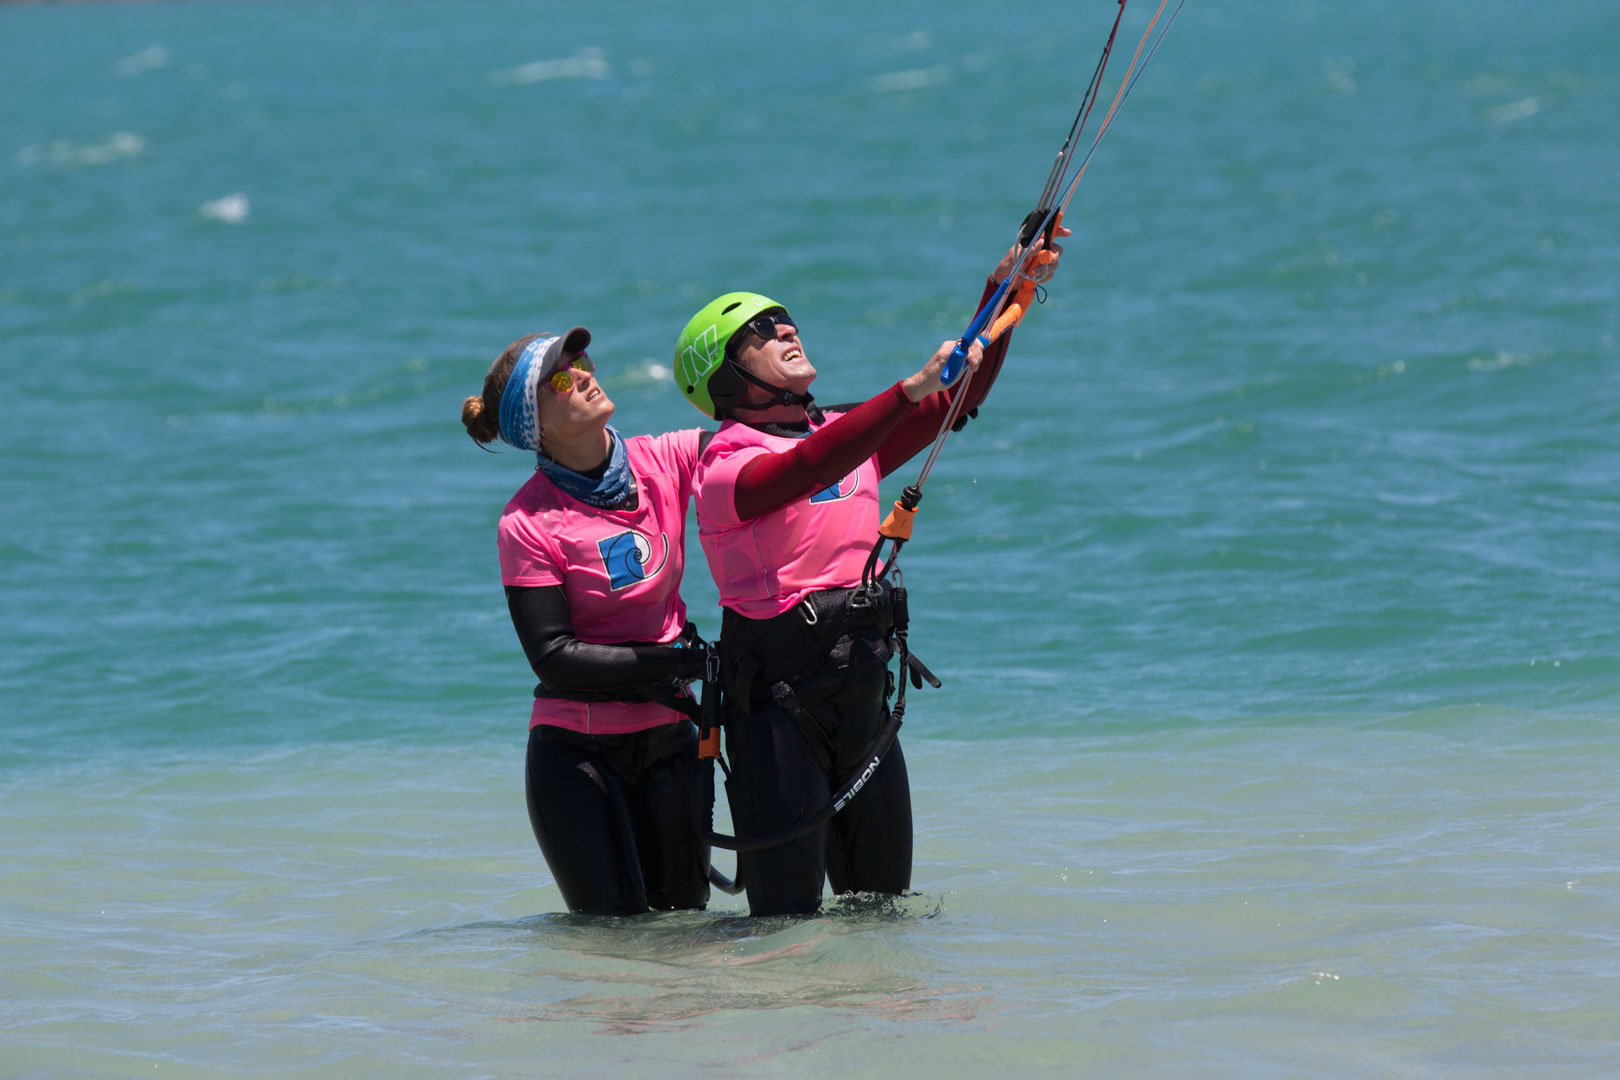 Obsession Kiting Lessons – 6 December 2017